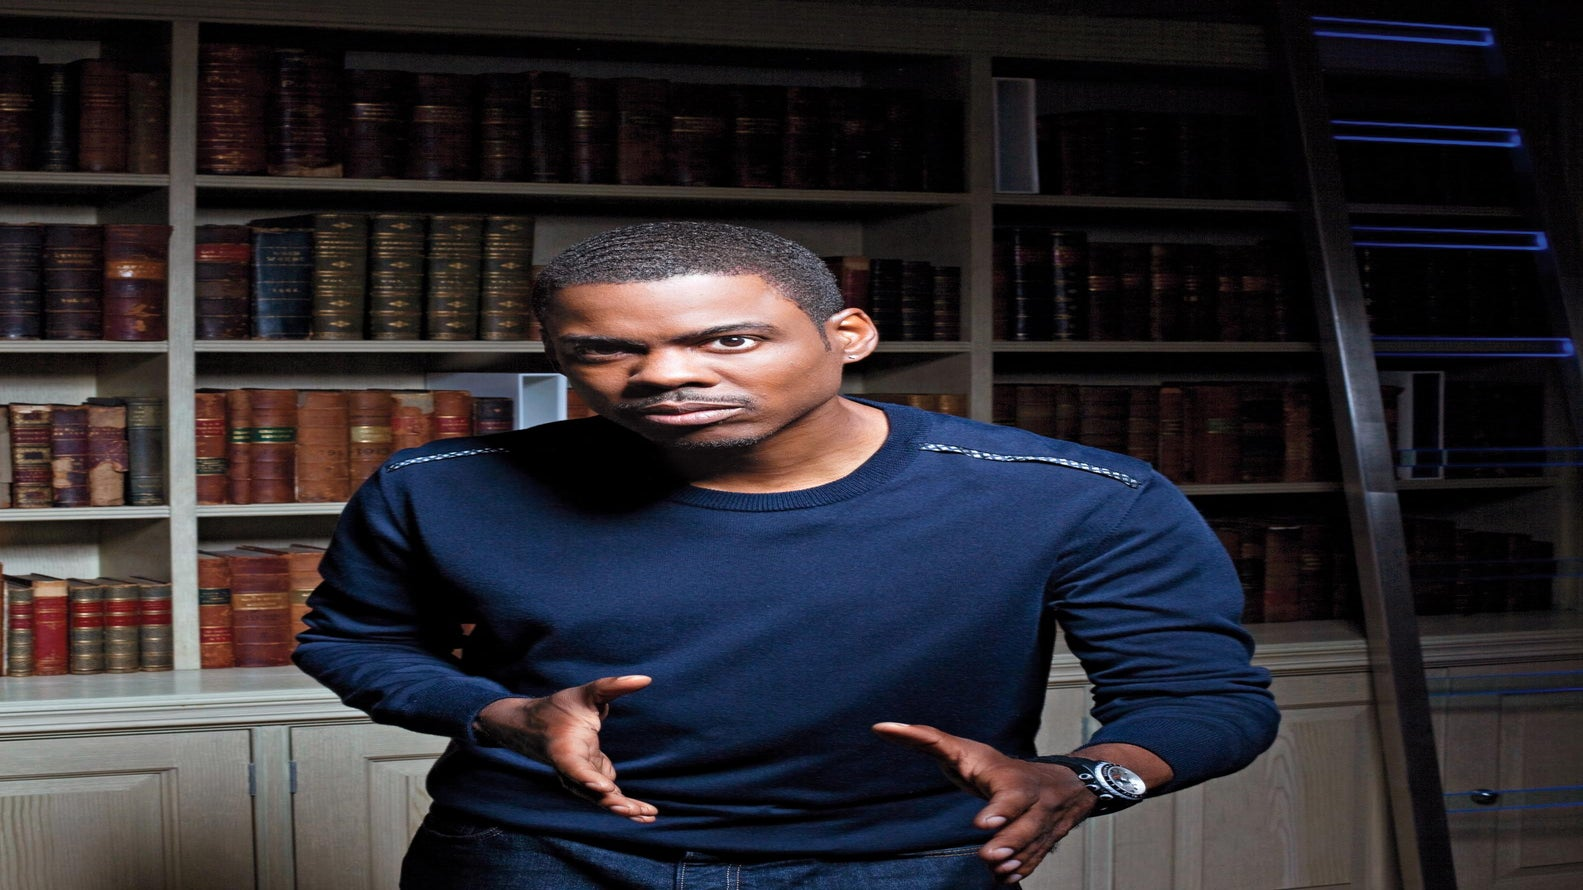 The 'Top Five' Realest Things Chris Rock Said This Year